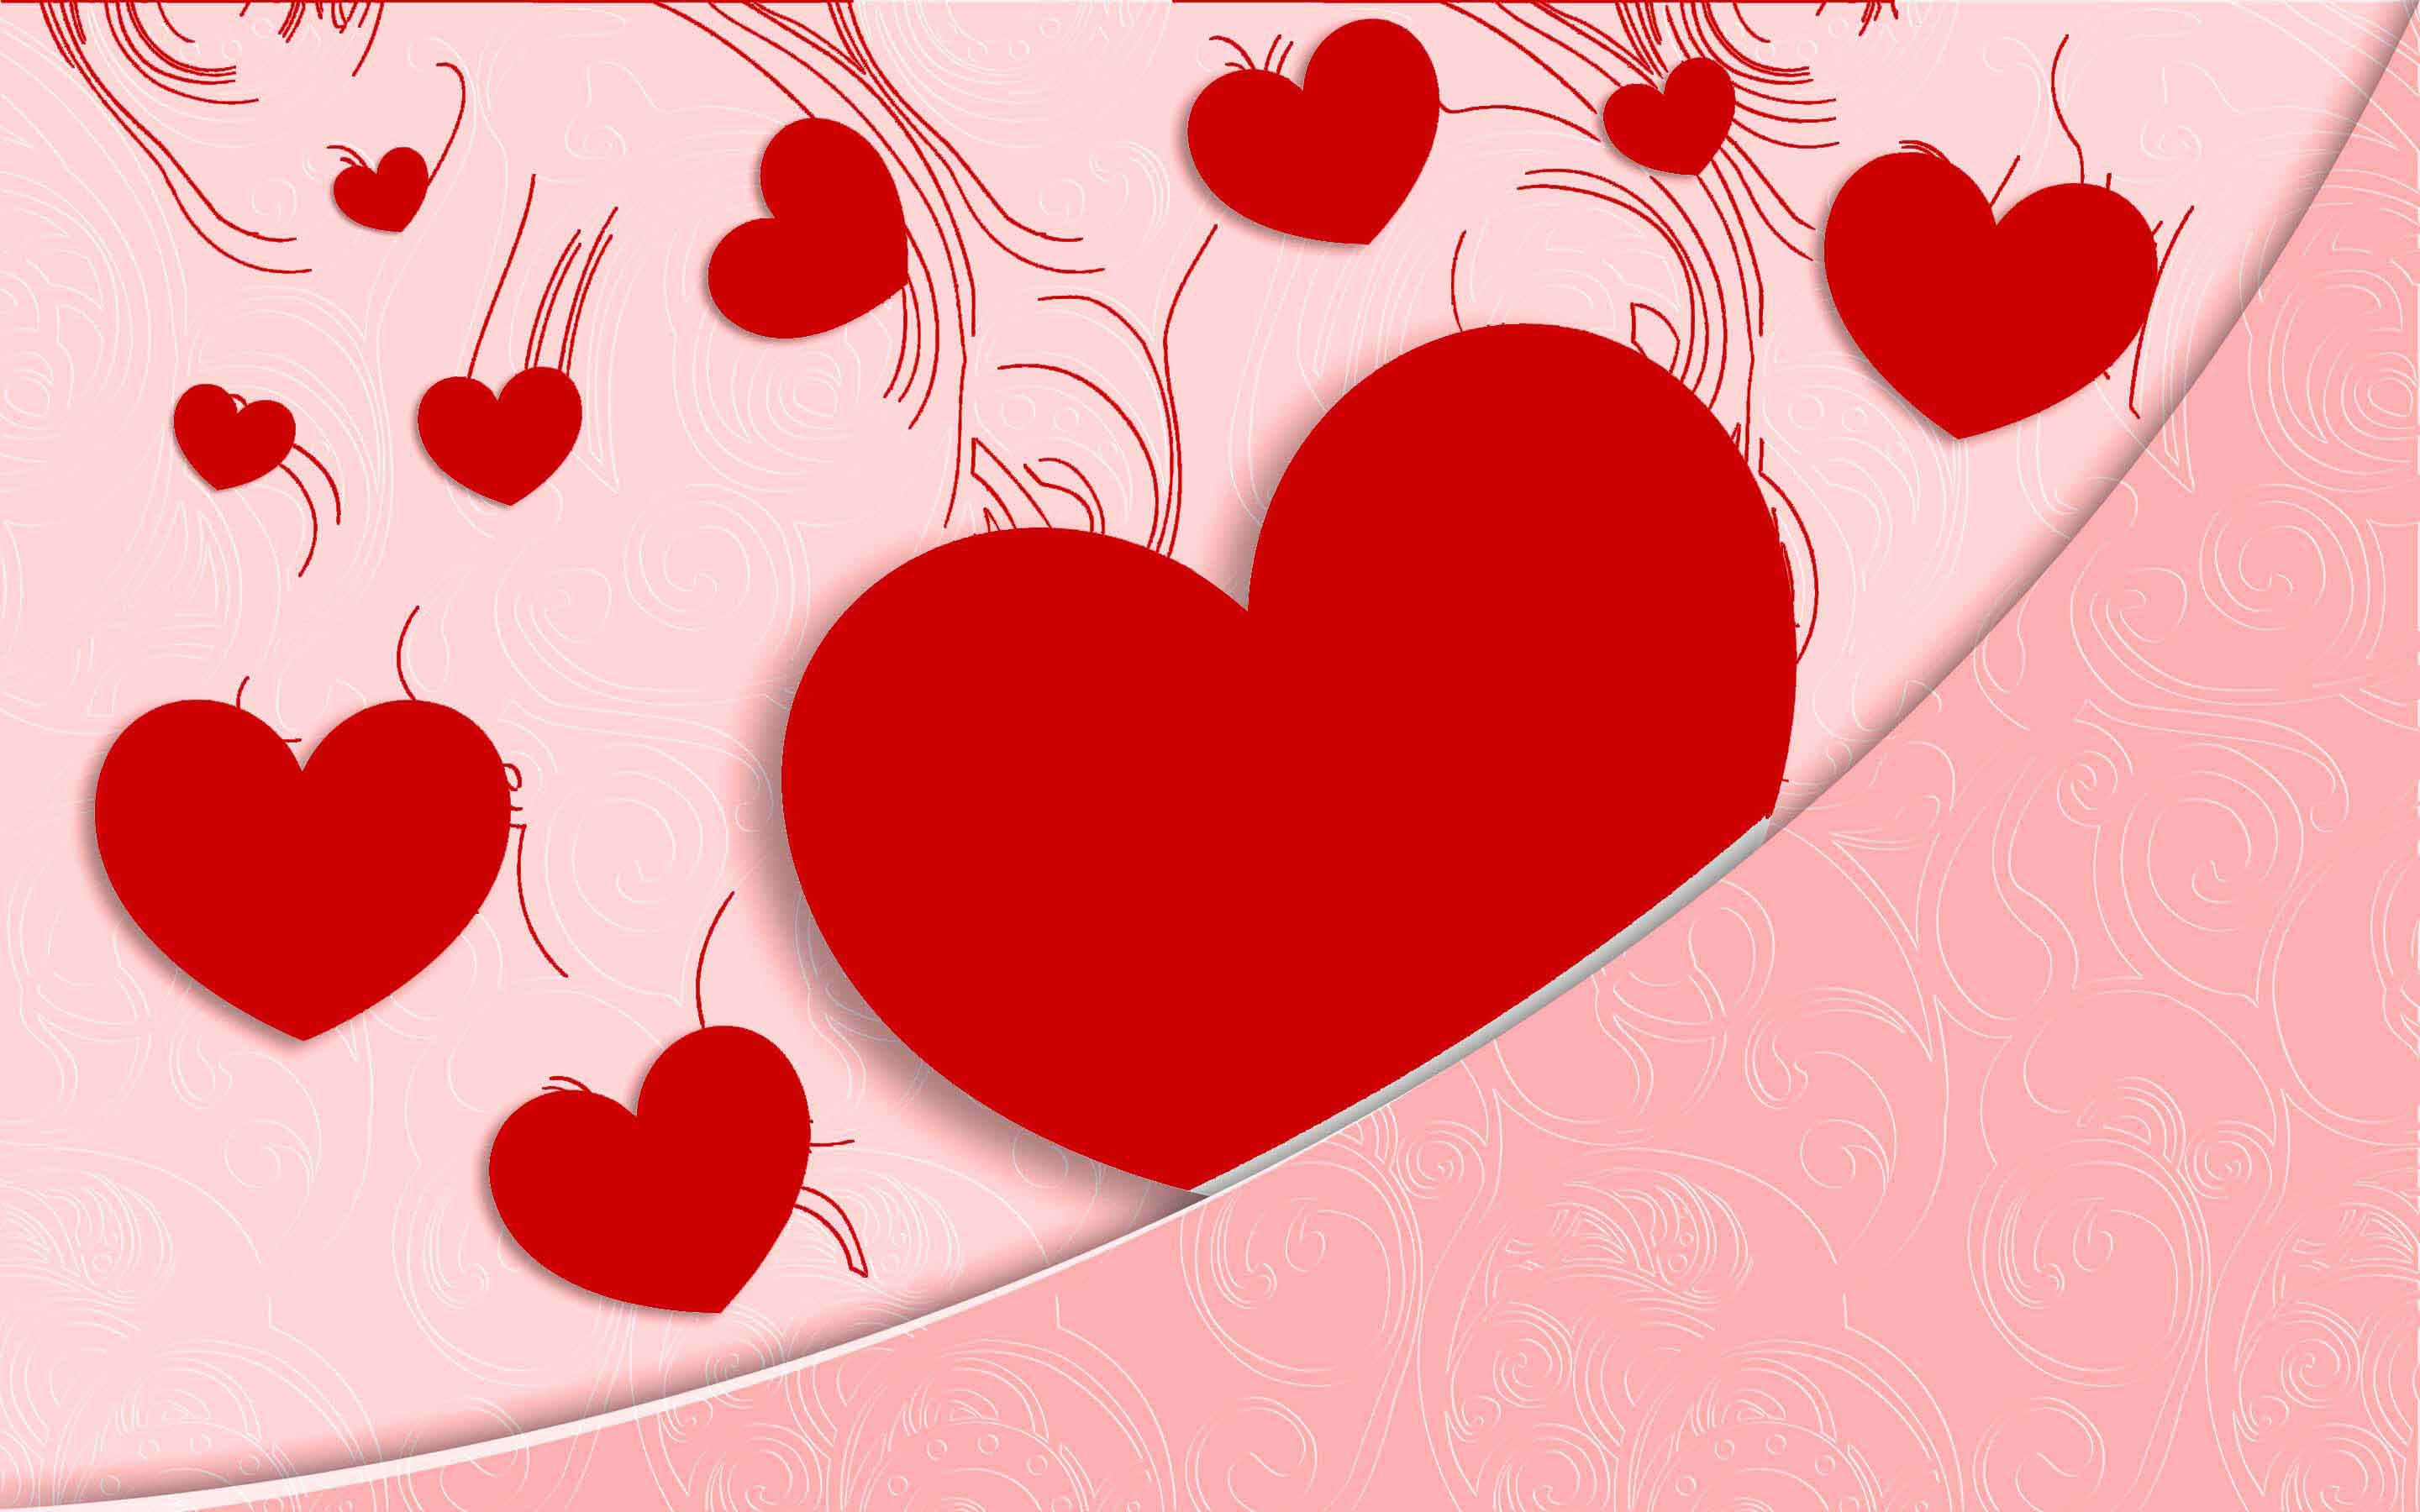 Love Shape Design Wallpaper : Heart Shape Wallpapers - Wallpaper cave